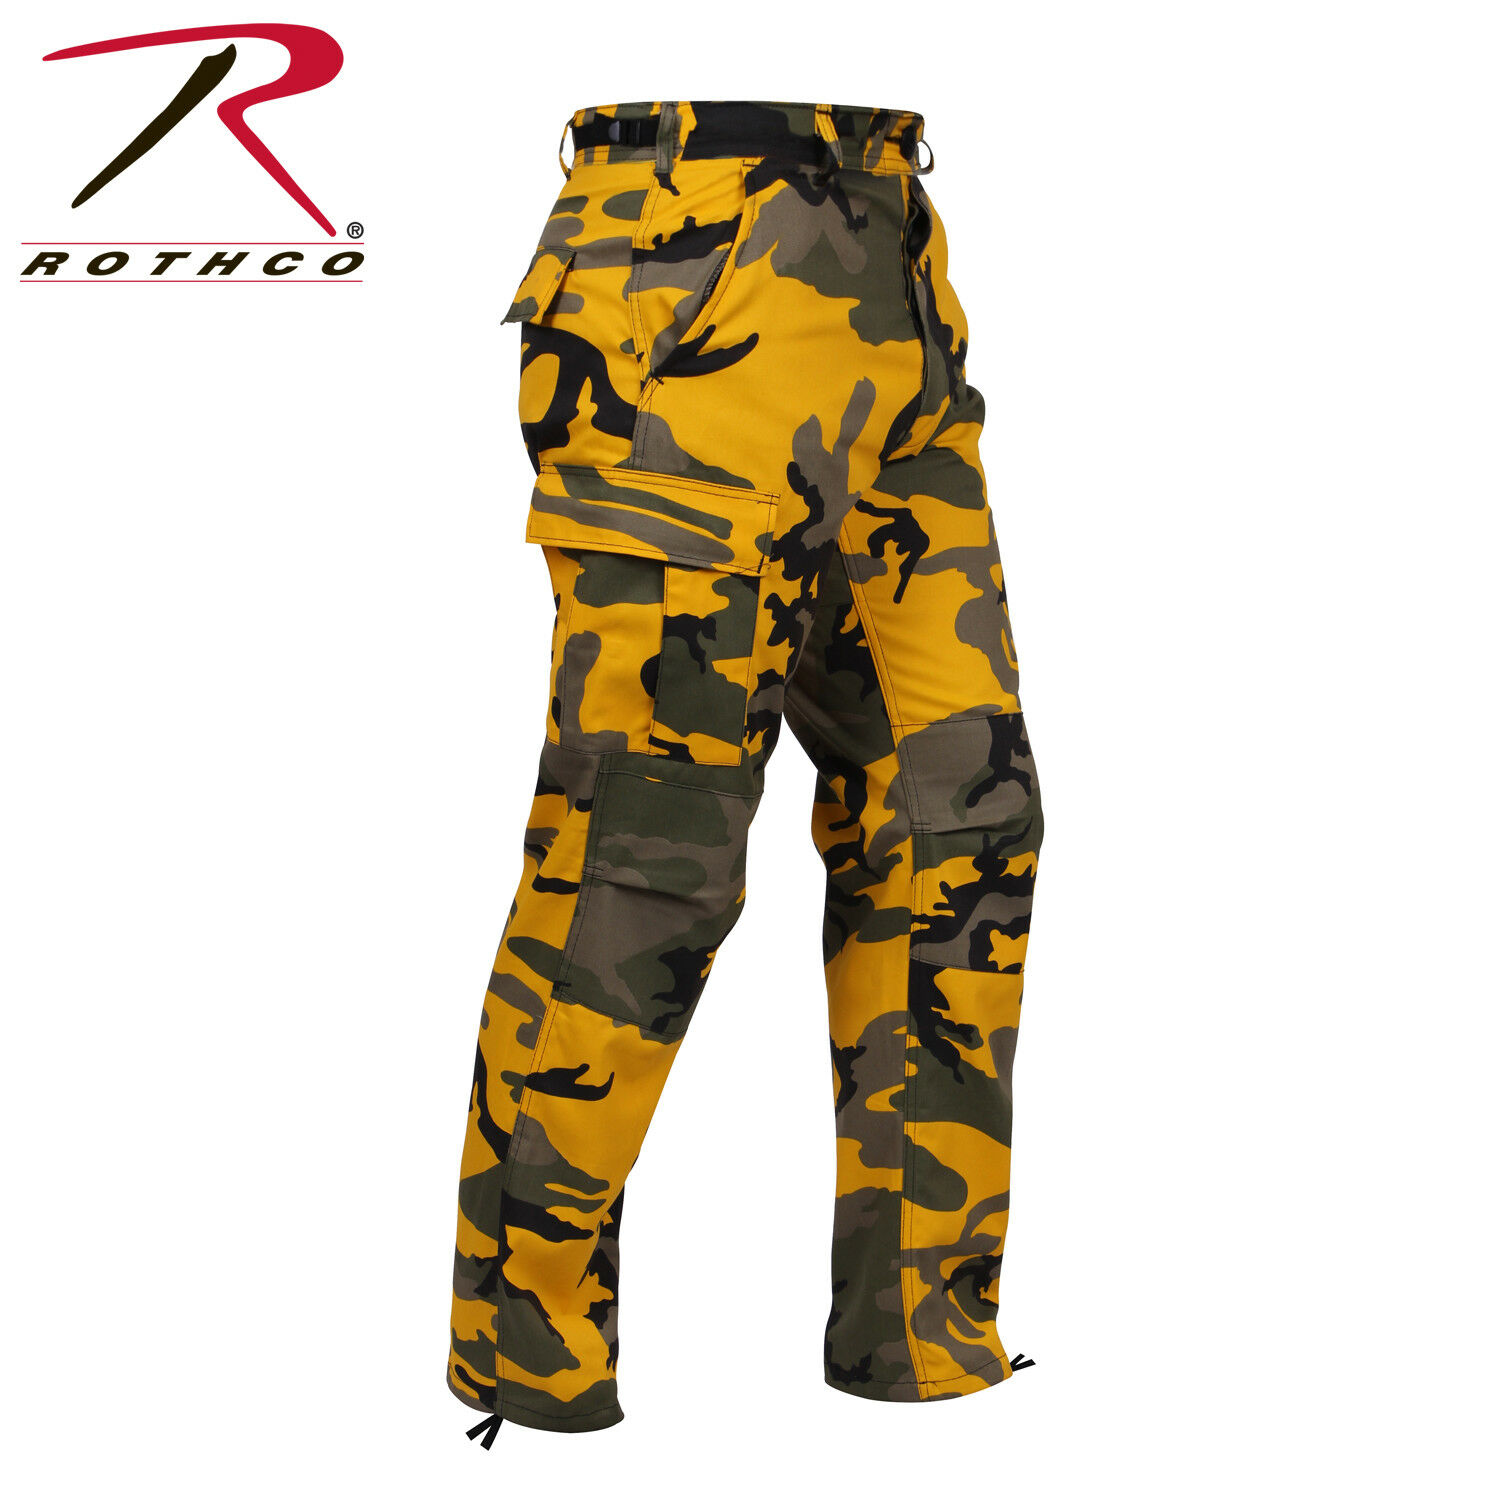 redhco Tactical BDU  Pants Stinger Yellow Camo  sale online discount